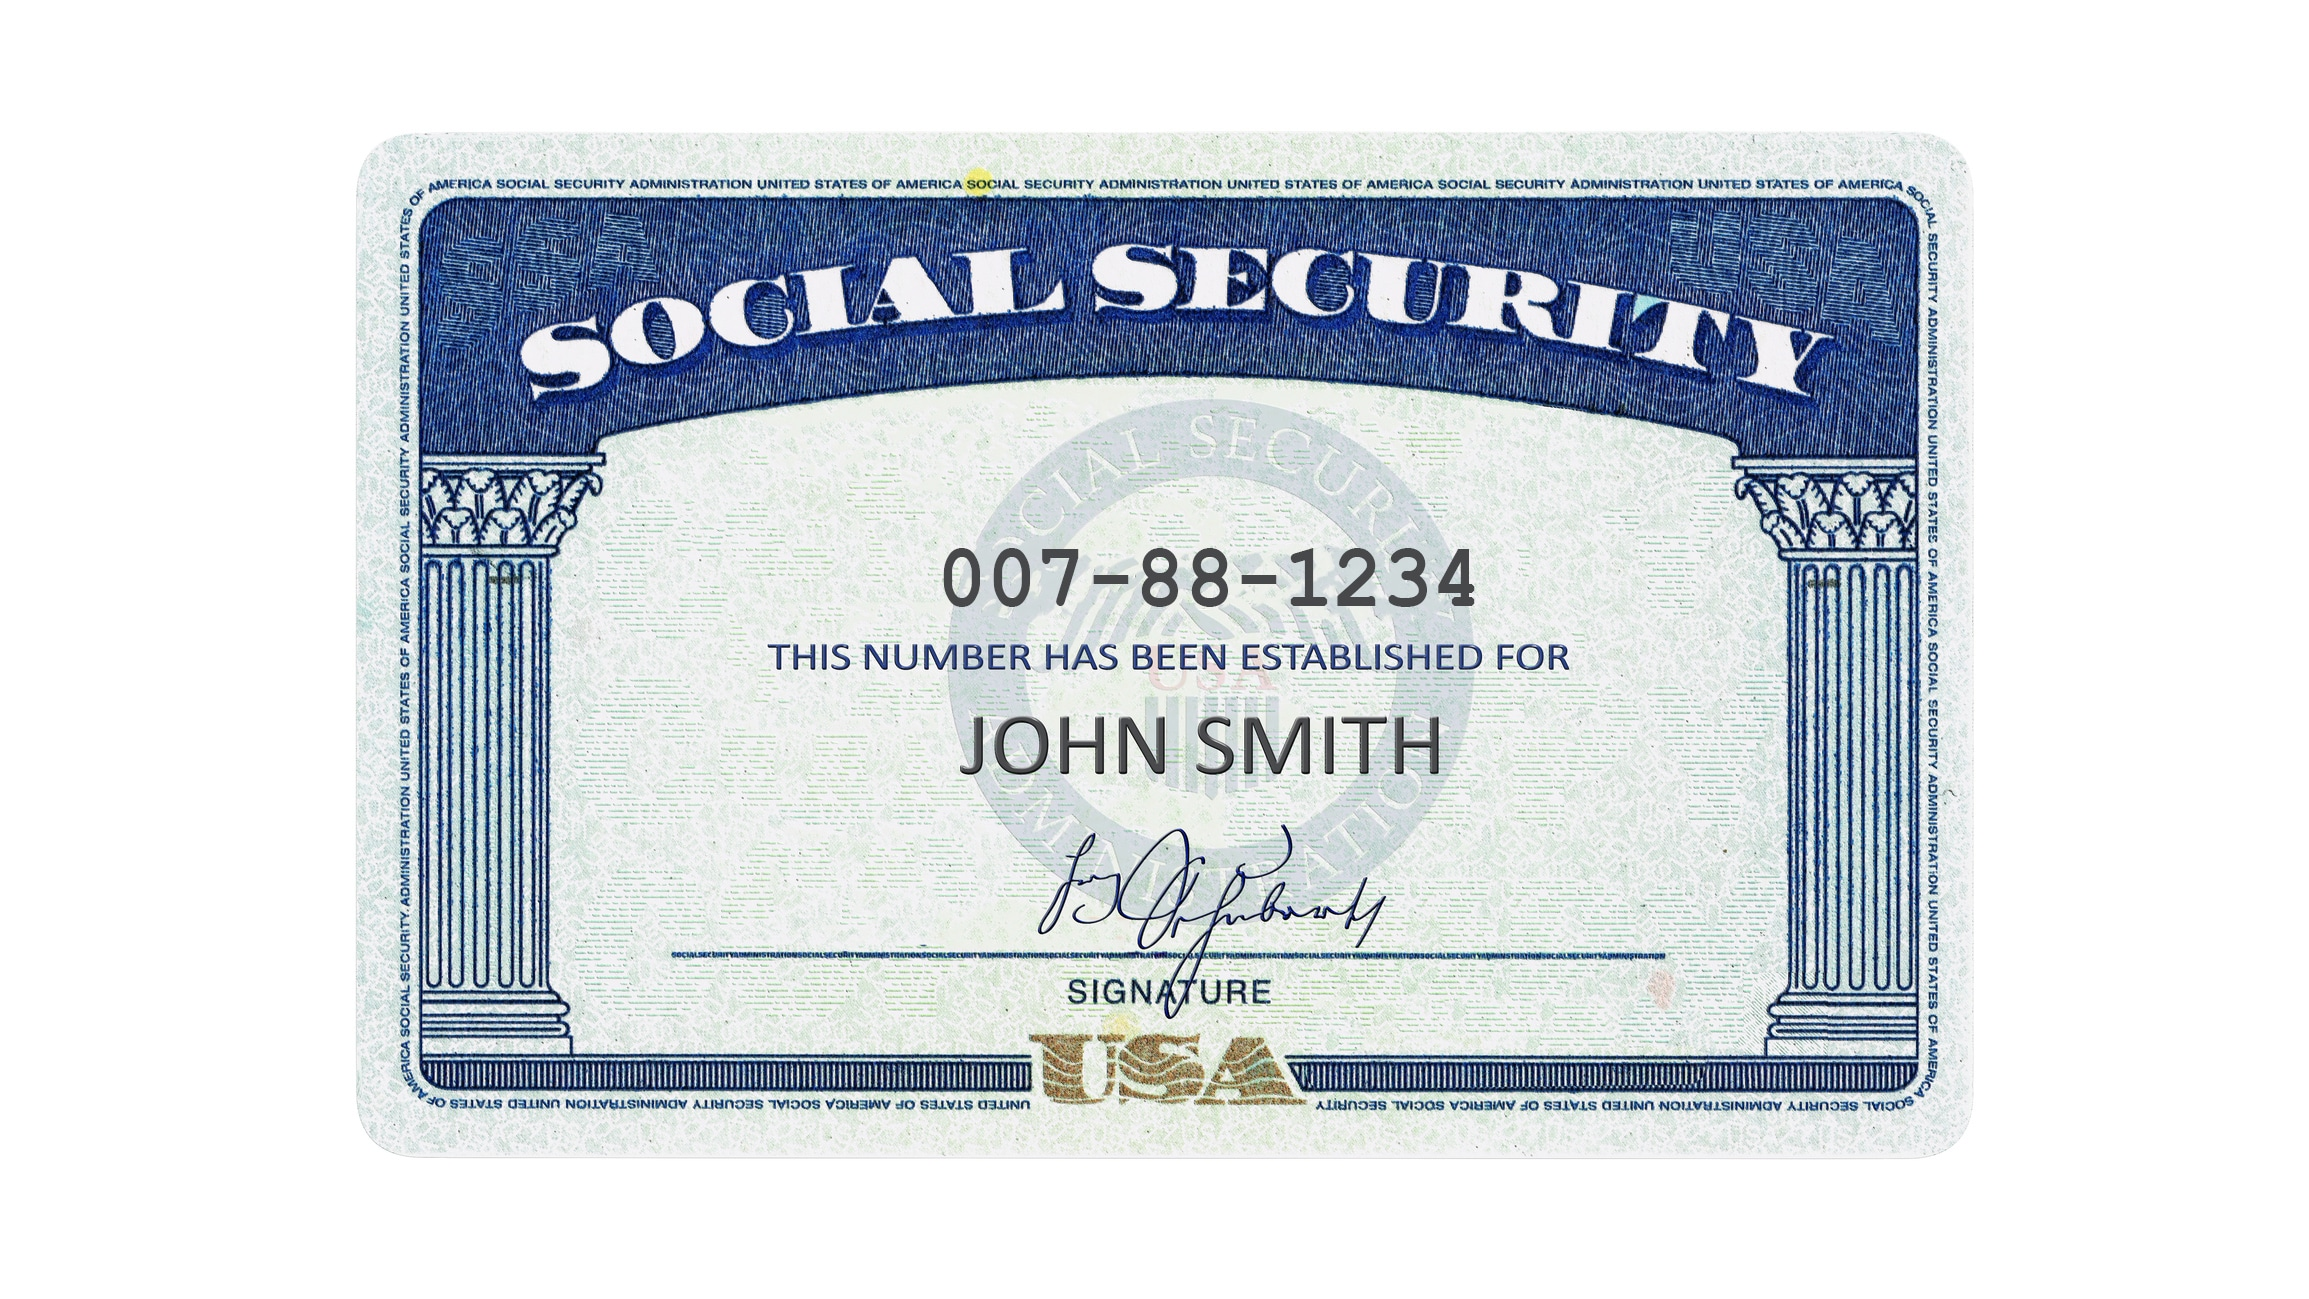 Social Security Number Explained